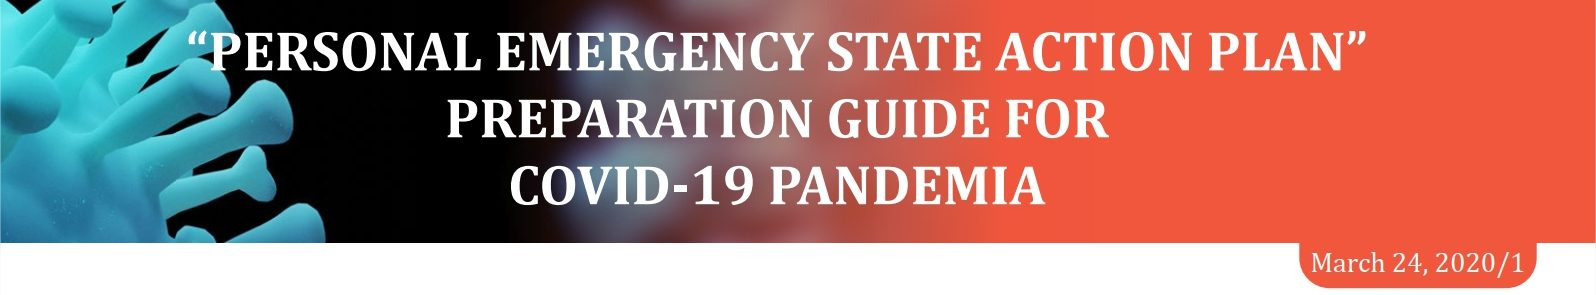 Personal Emergency State Action Plan